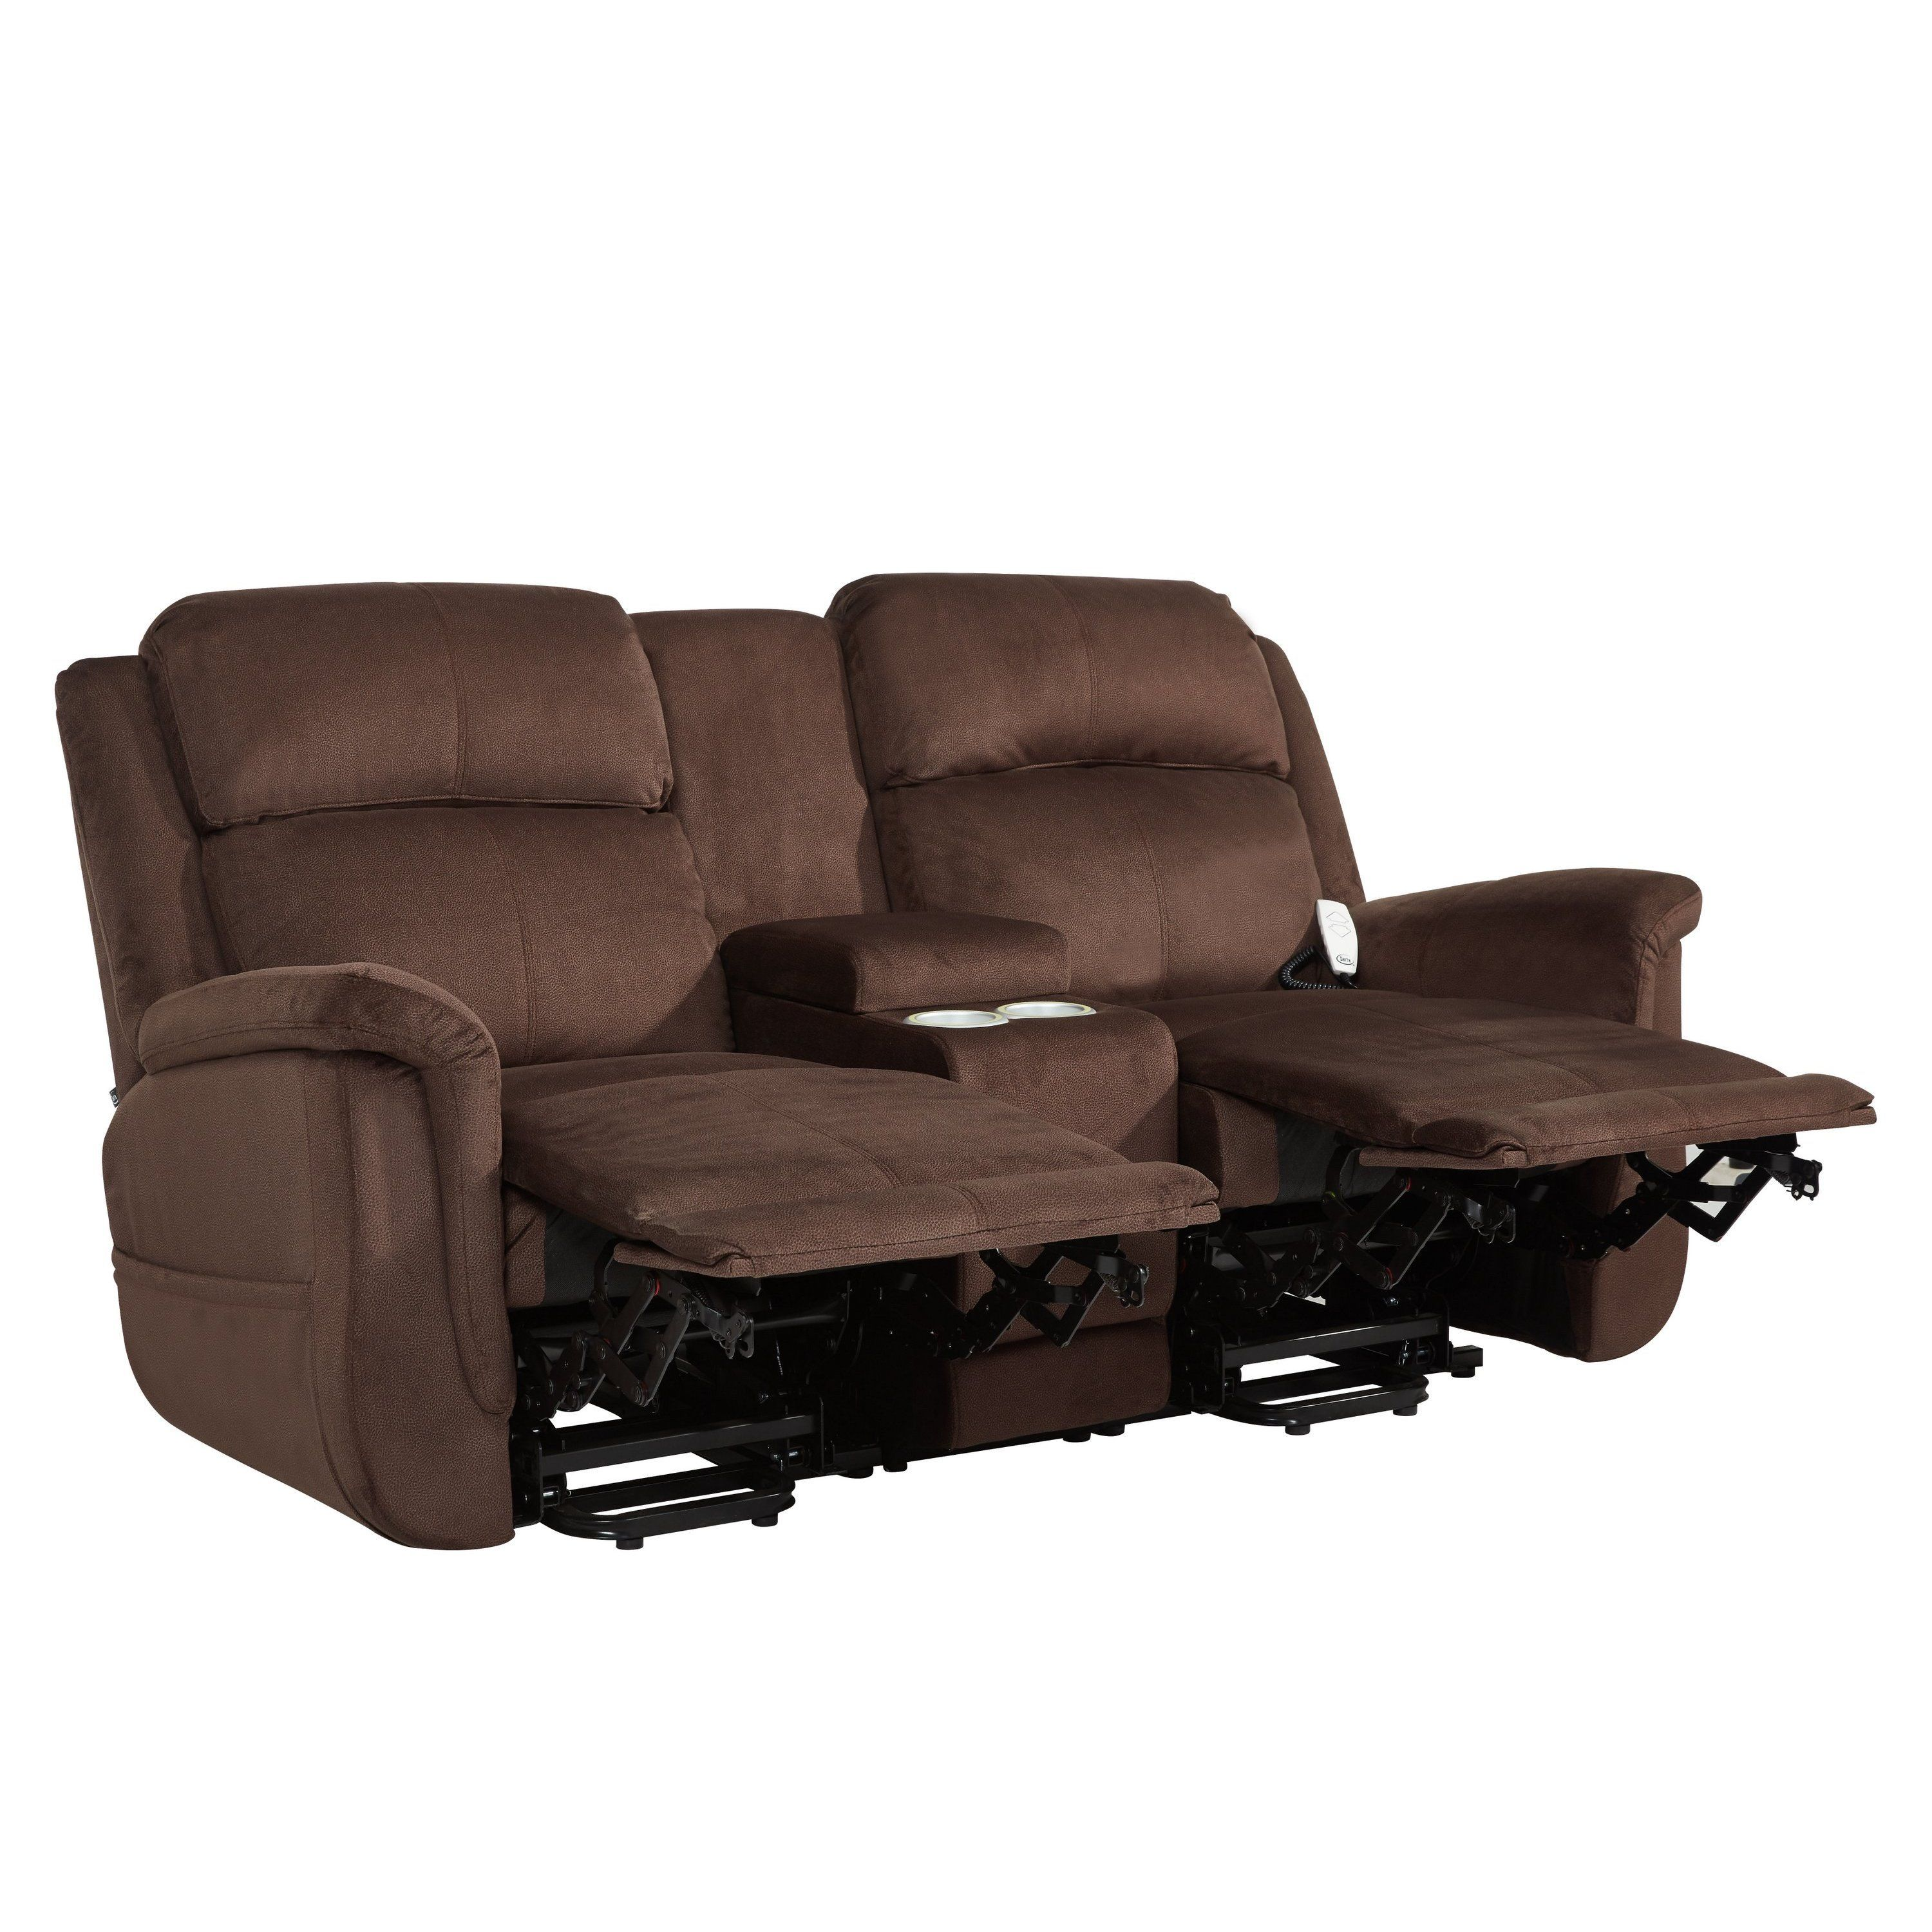 and pin reclining zero black gravity loveseat shipping smart power chairs tech two free bluetooth sofa